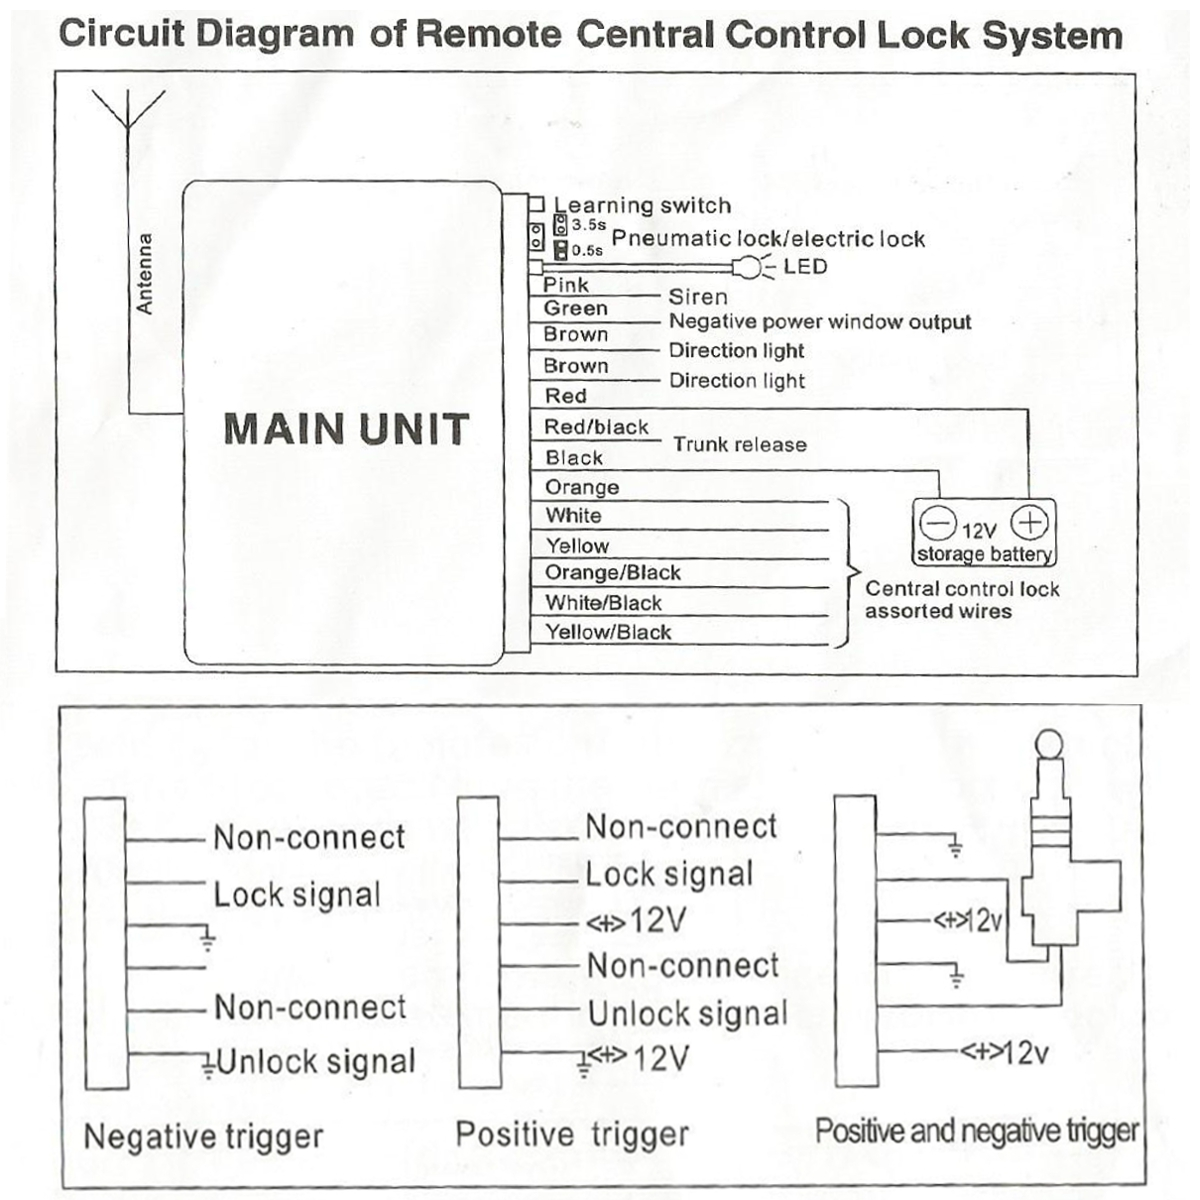 Universal Keyless Entry Wiring Diagram Electrical Diagrams Mfk Central Auto Toyota For Avital Model 4111